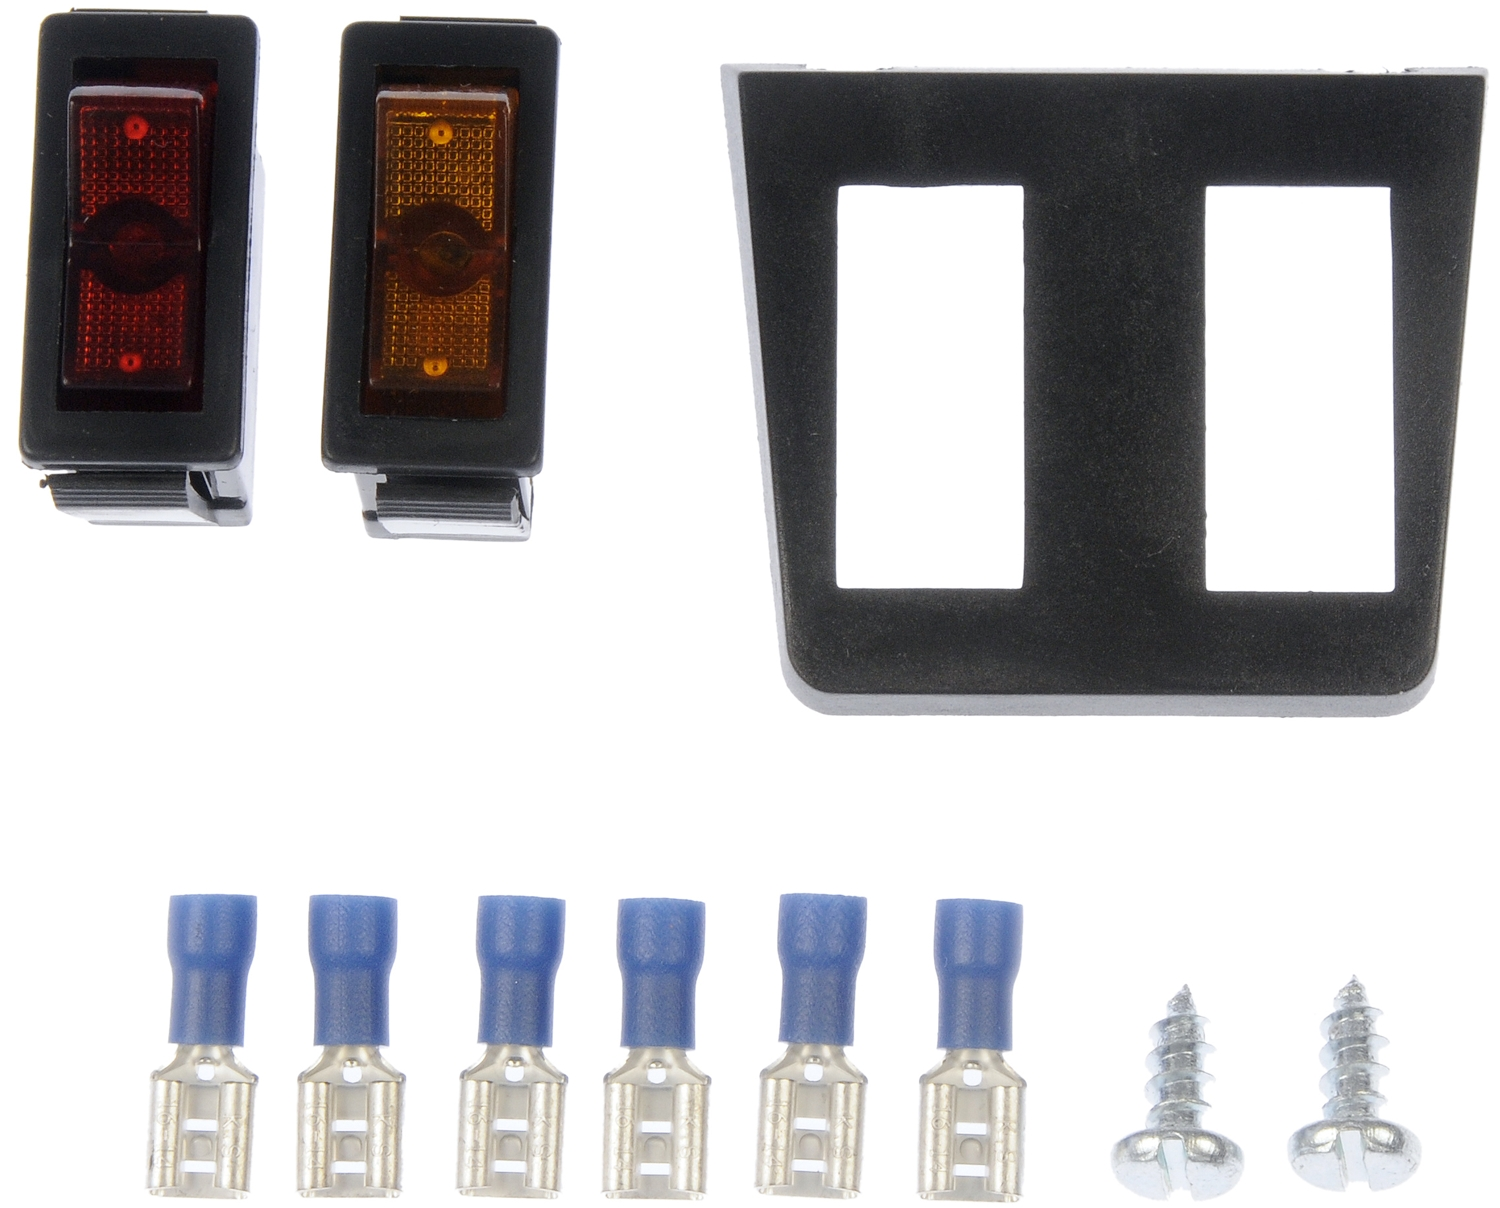 dorman oe solutions 86921 multi purpose switch conduct tite r 12 volt 20 amp max rocker rectangular non lighted red amber without safety cover  [ 2000 x 2000 Pixel ]